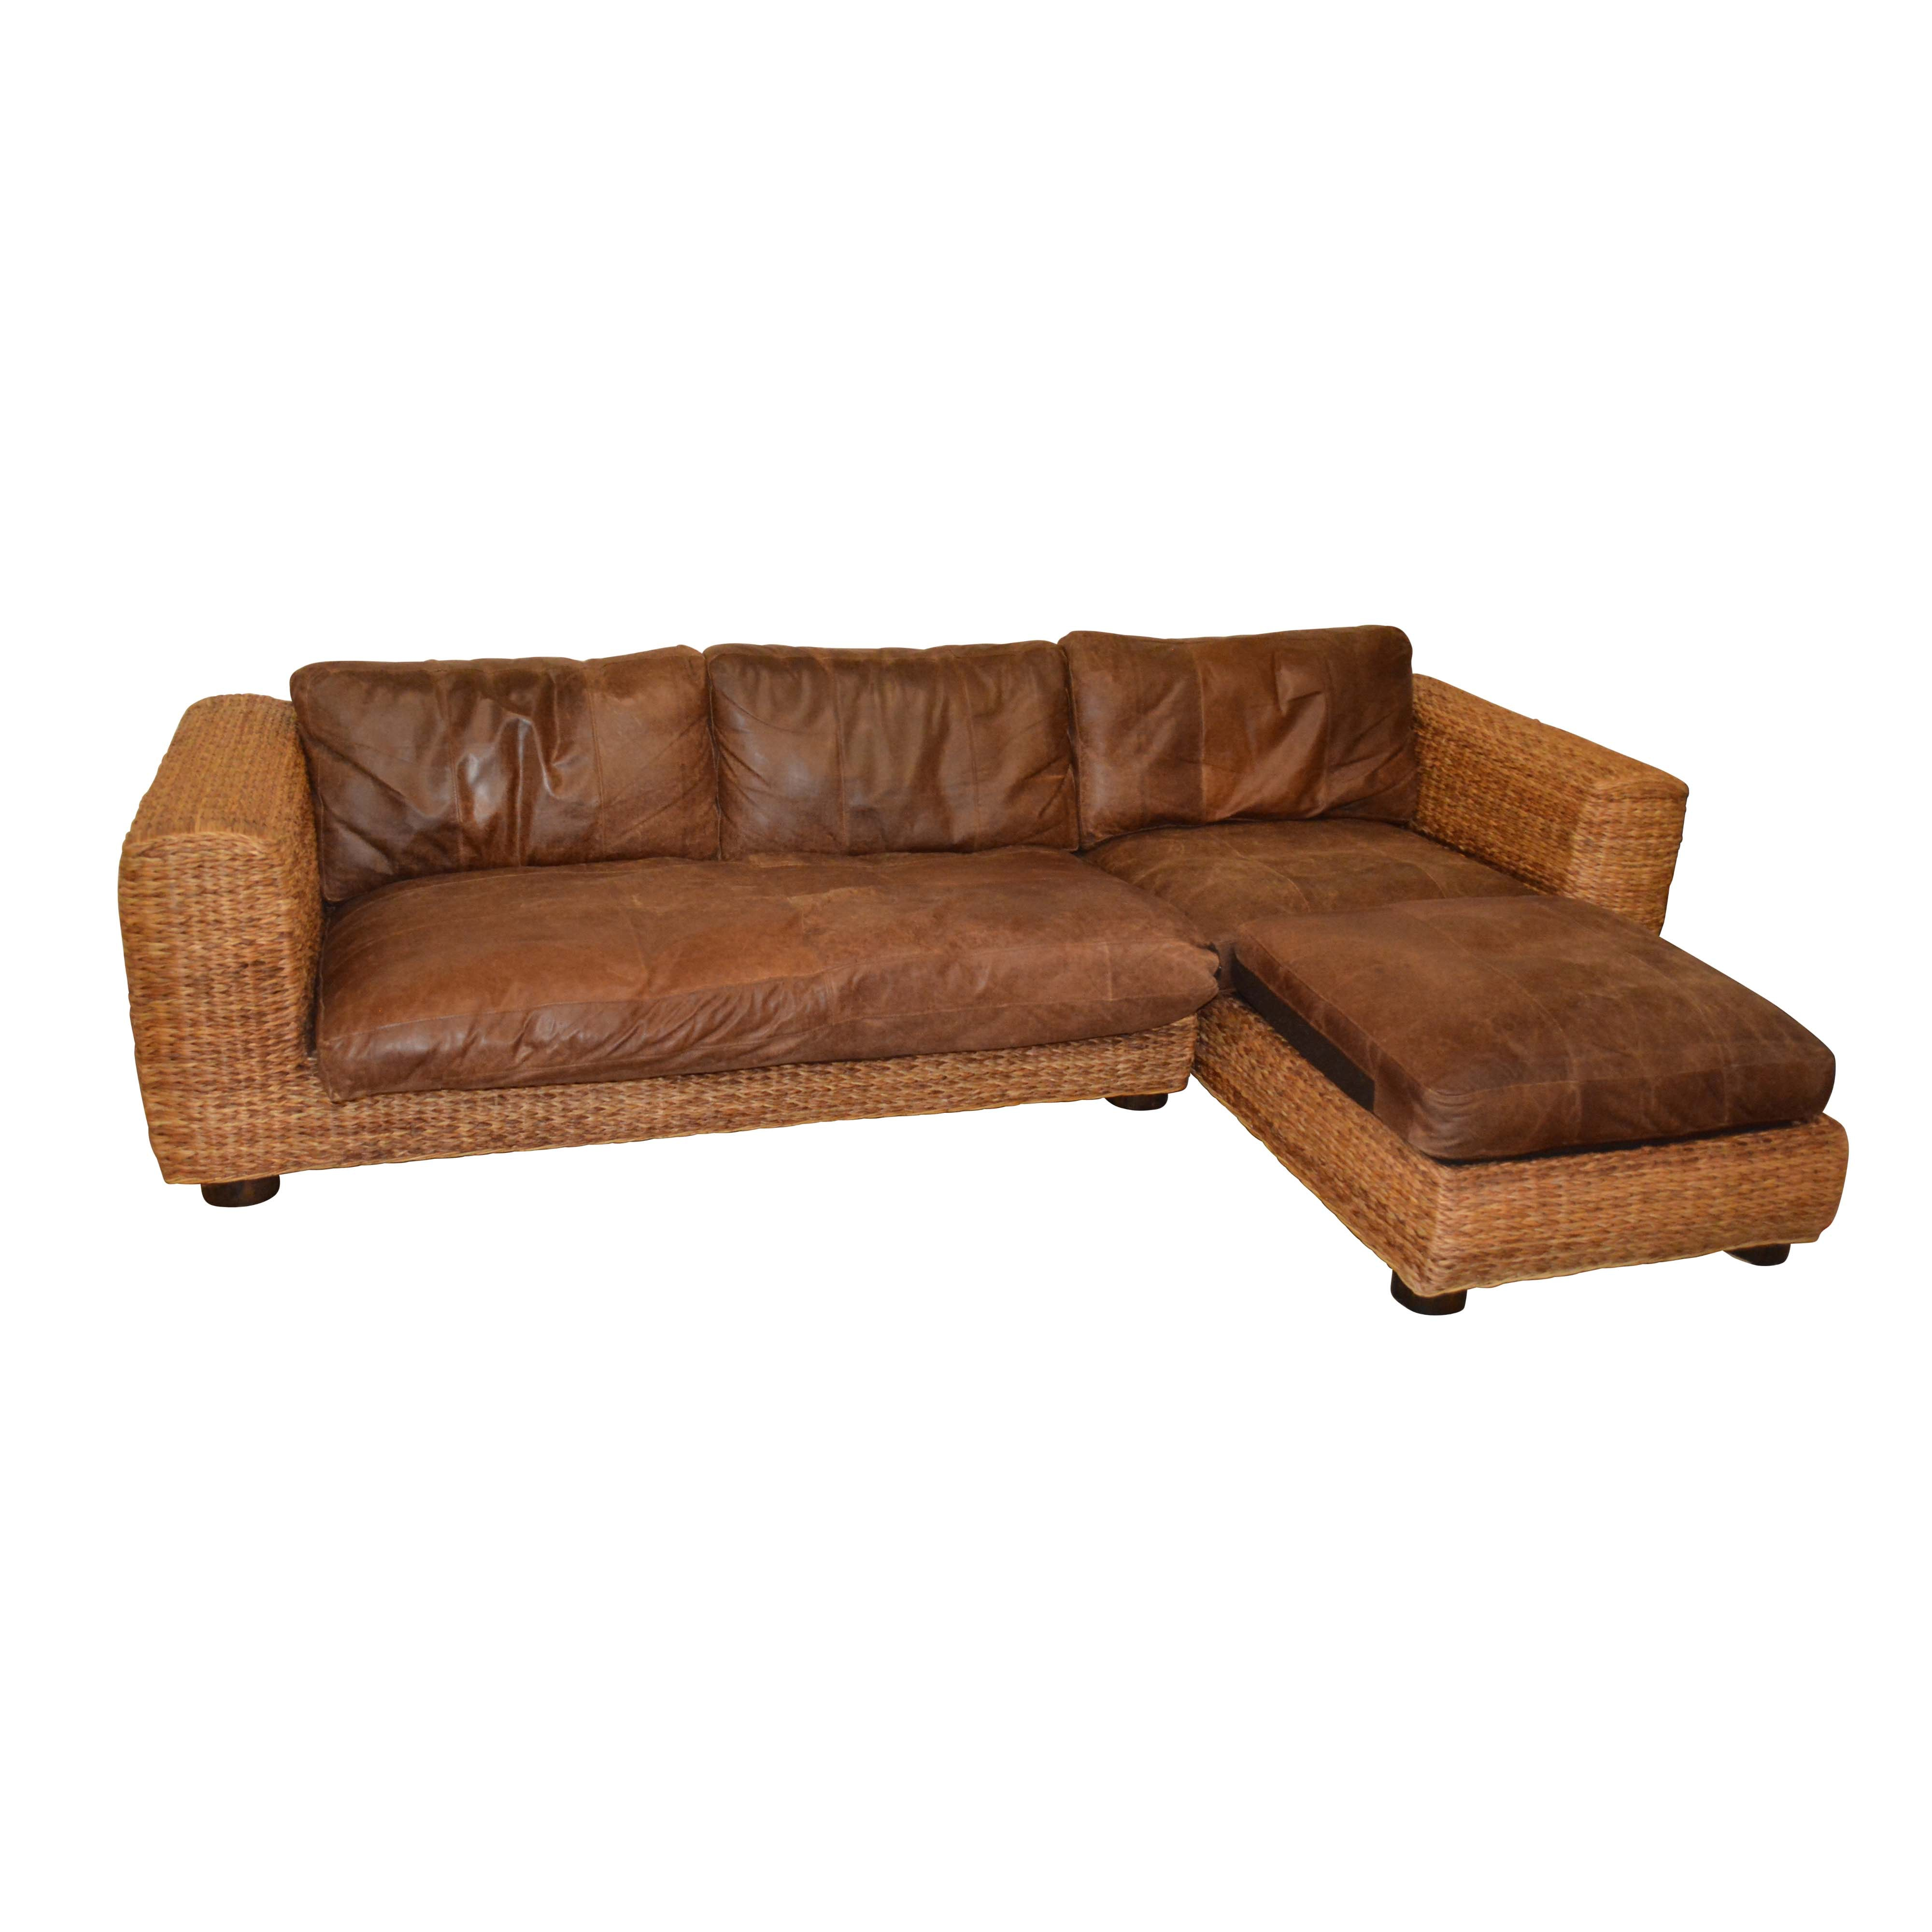 Wicker Weave Sectional with Leather Seats